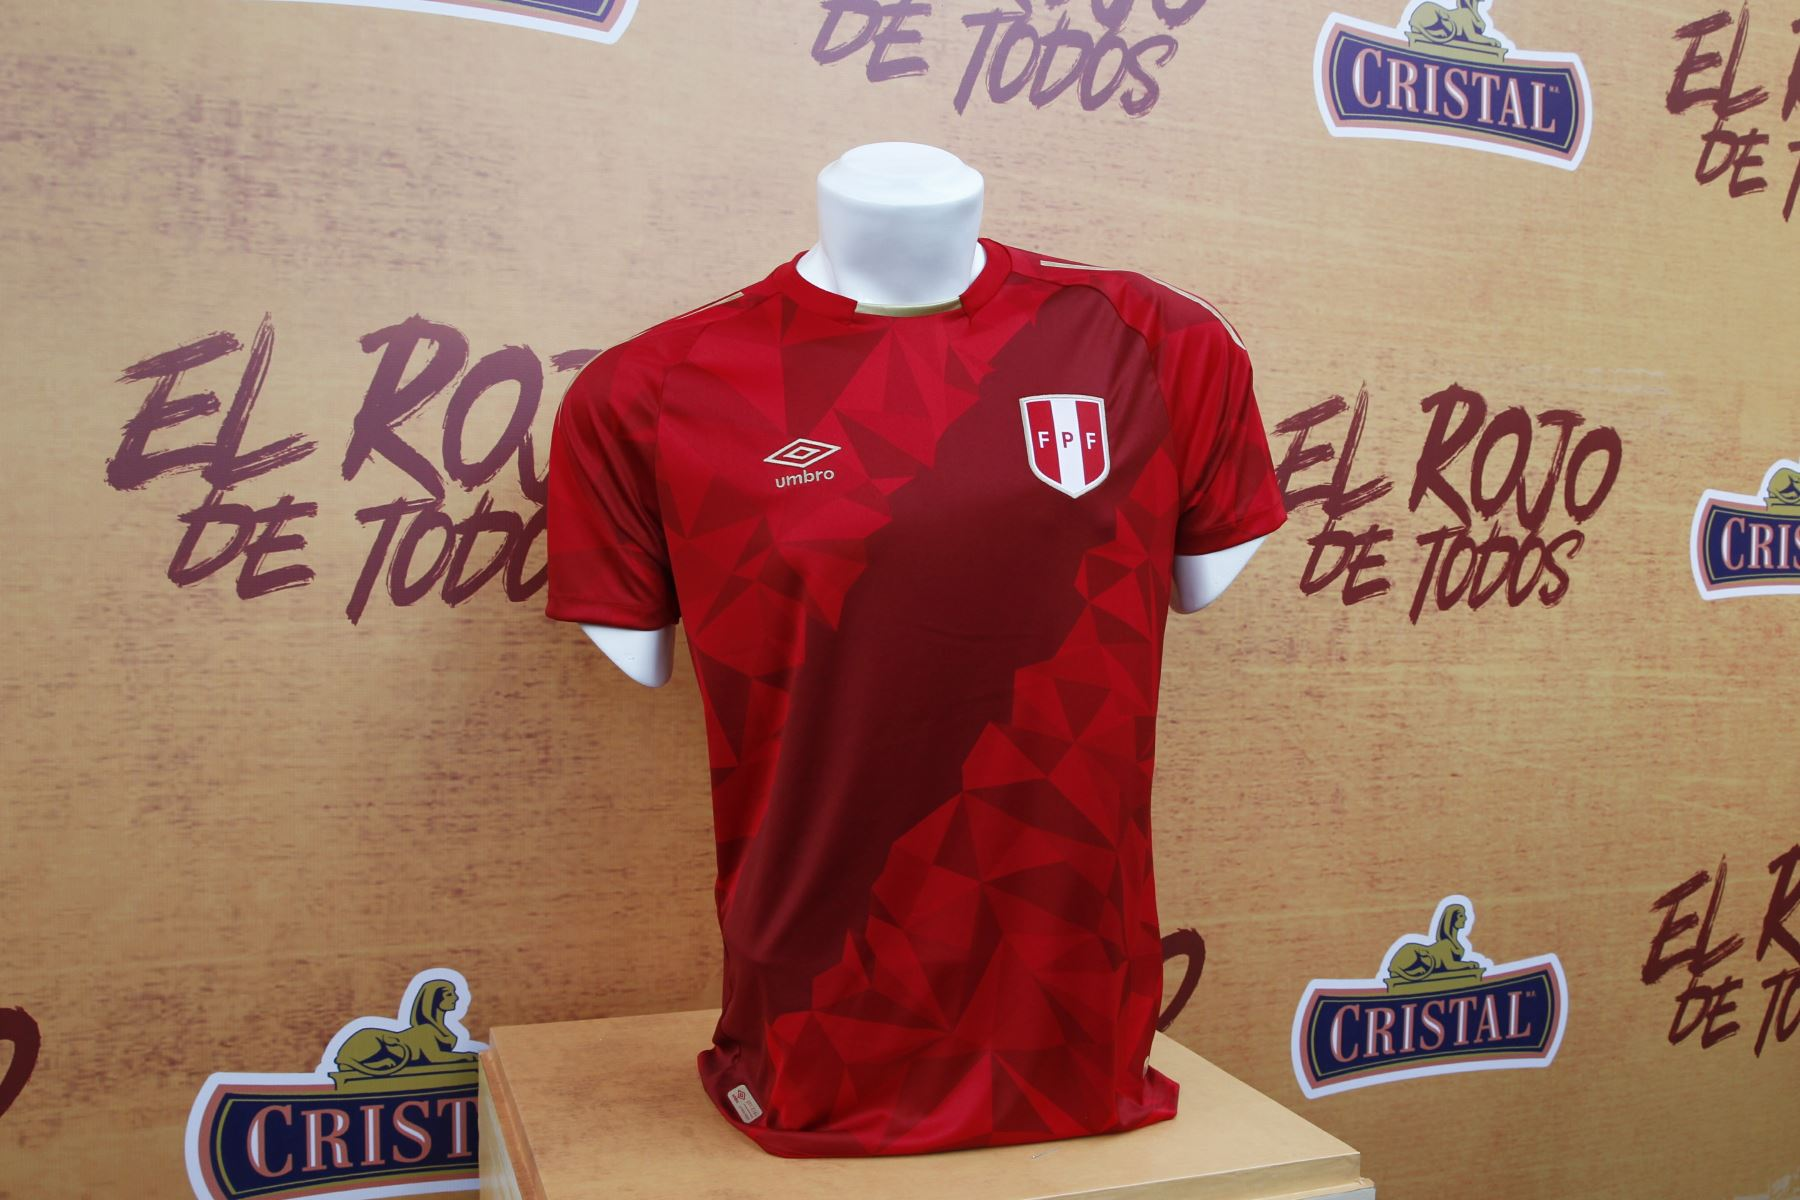 c8a45ce62dd Peru unveils new fan jersey for World Cup 2018 | News | ANDINA ...